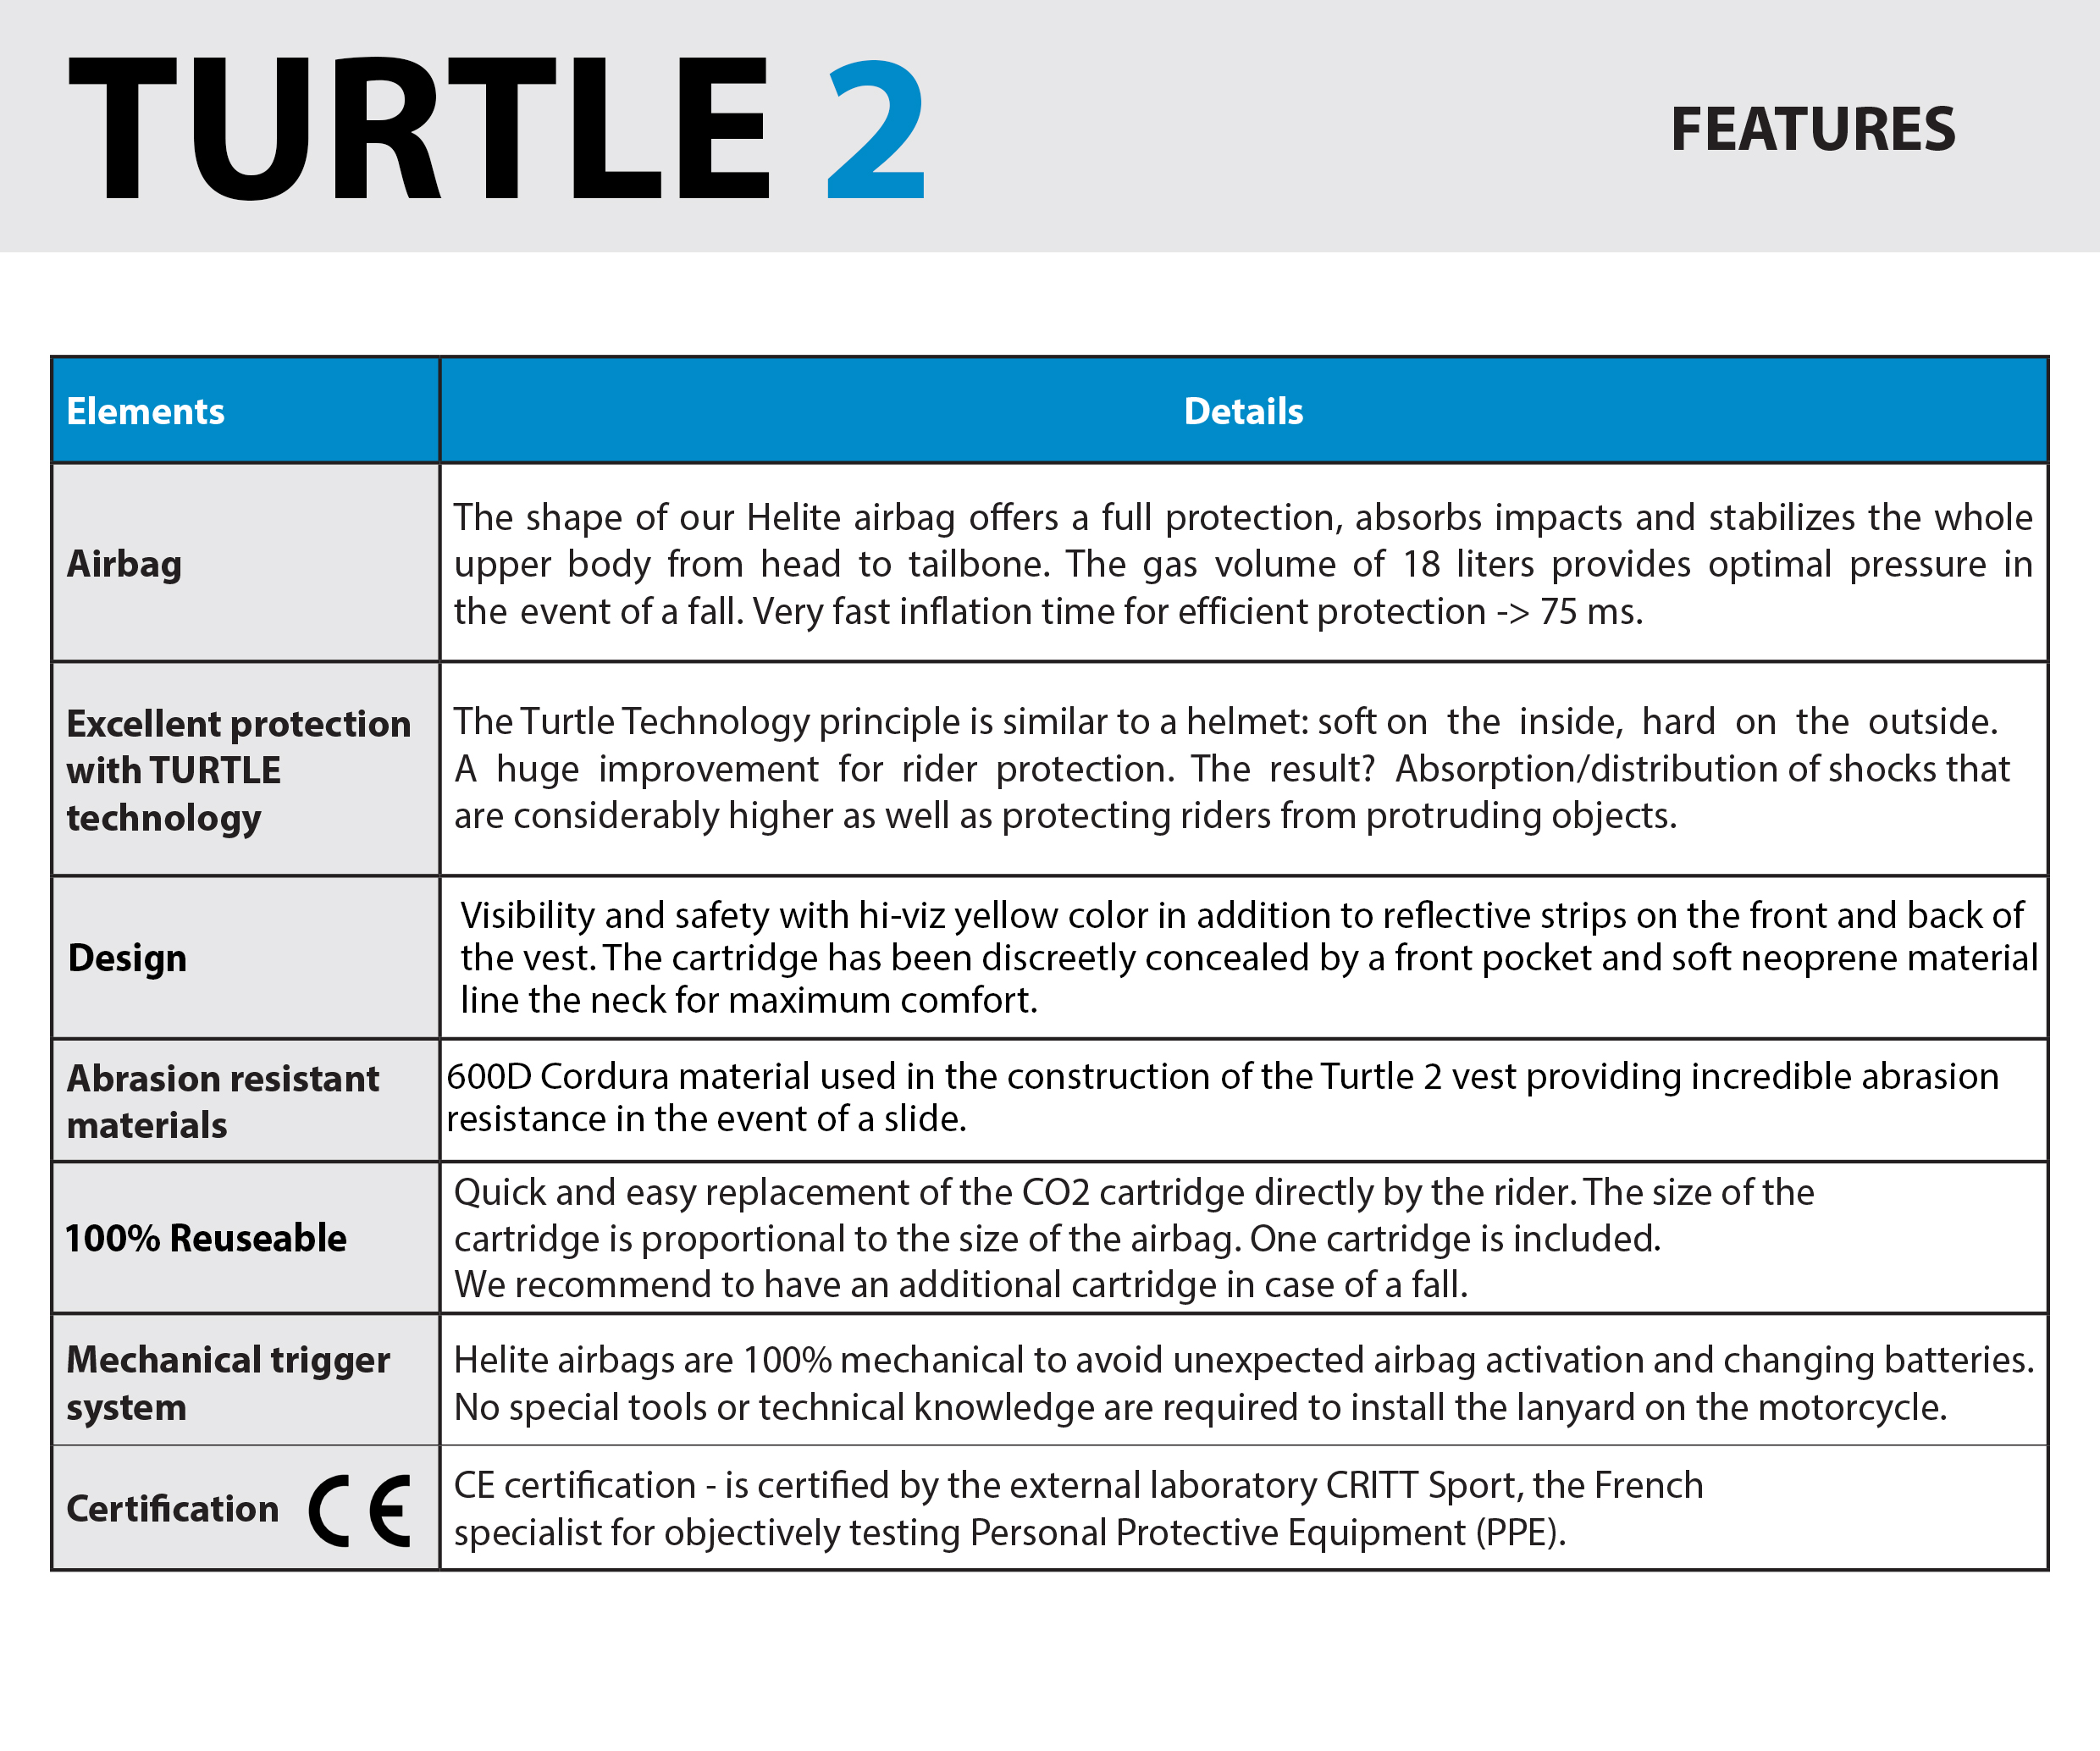 turtle-2-features.jpg